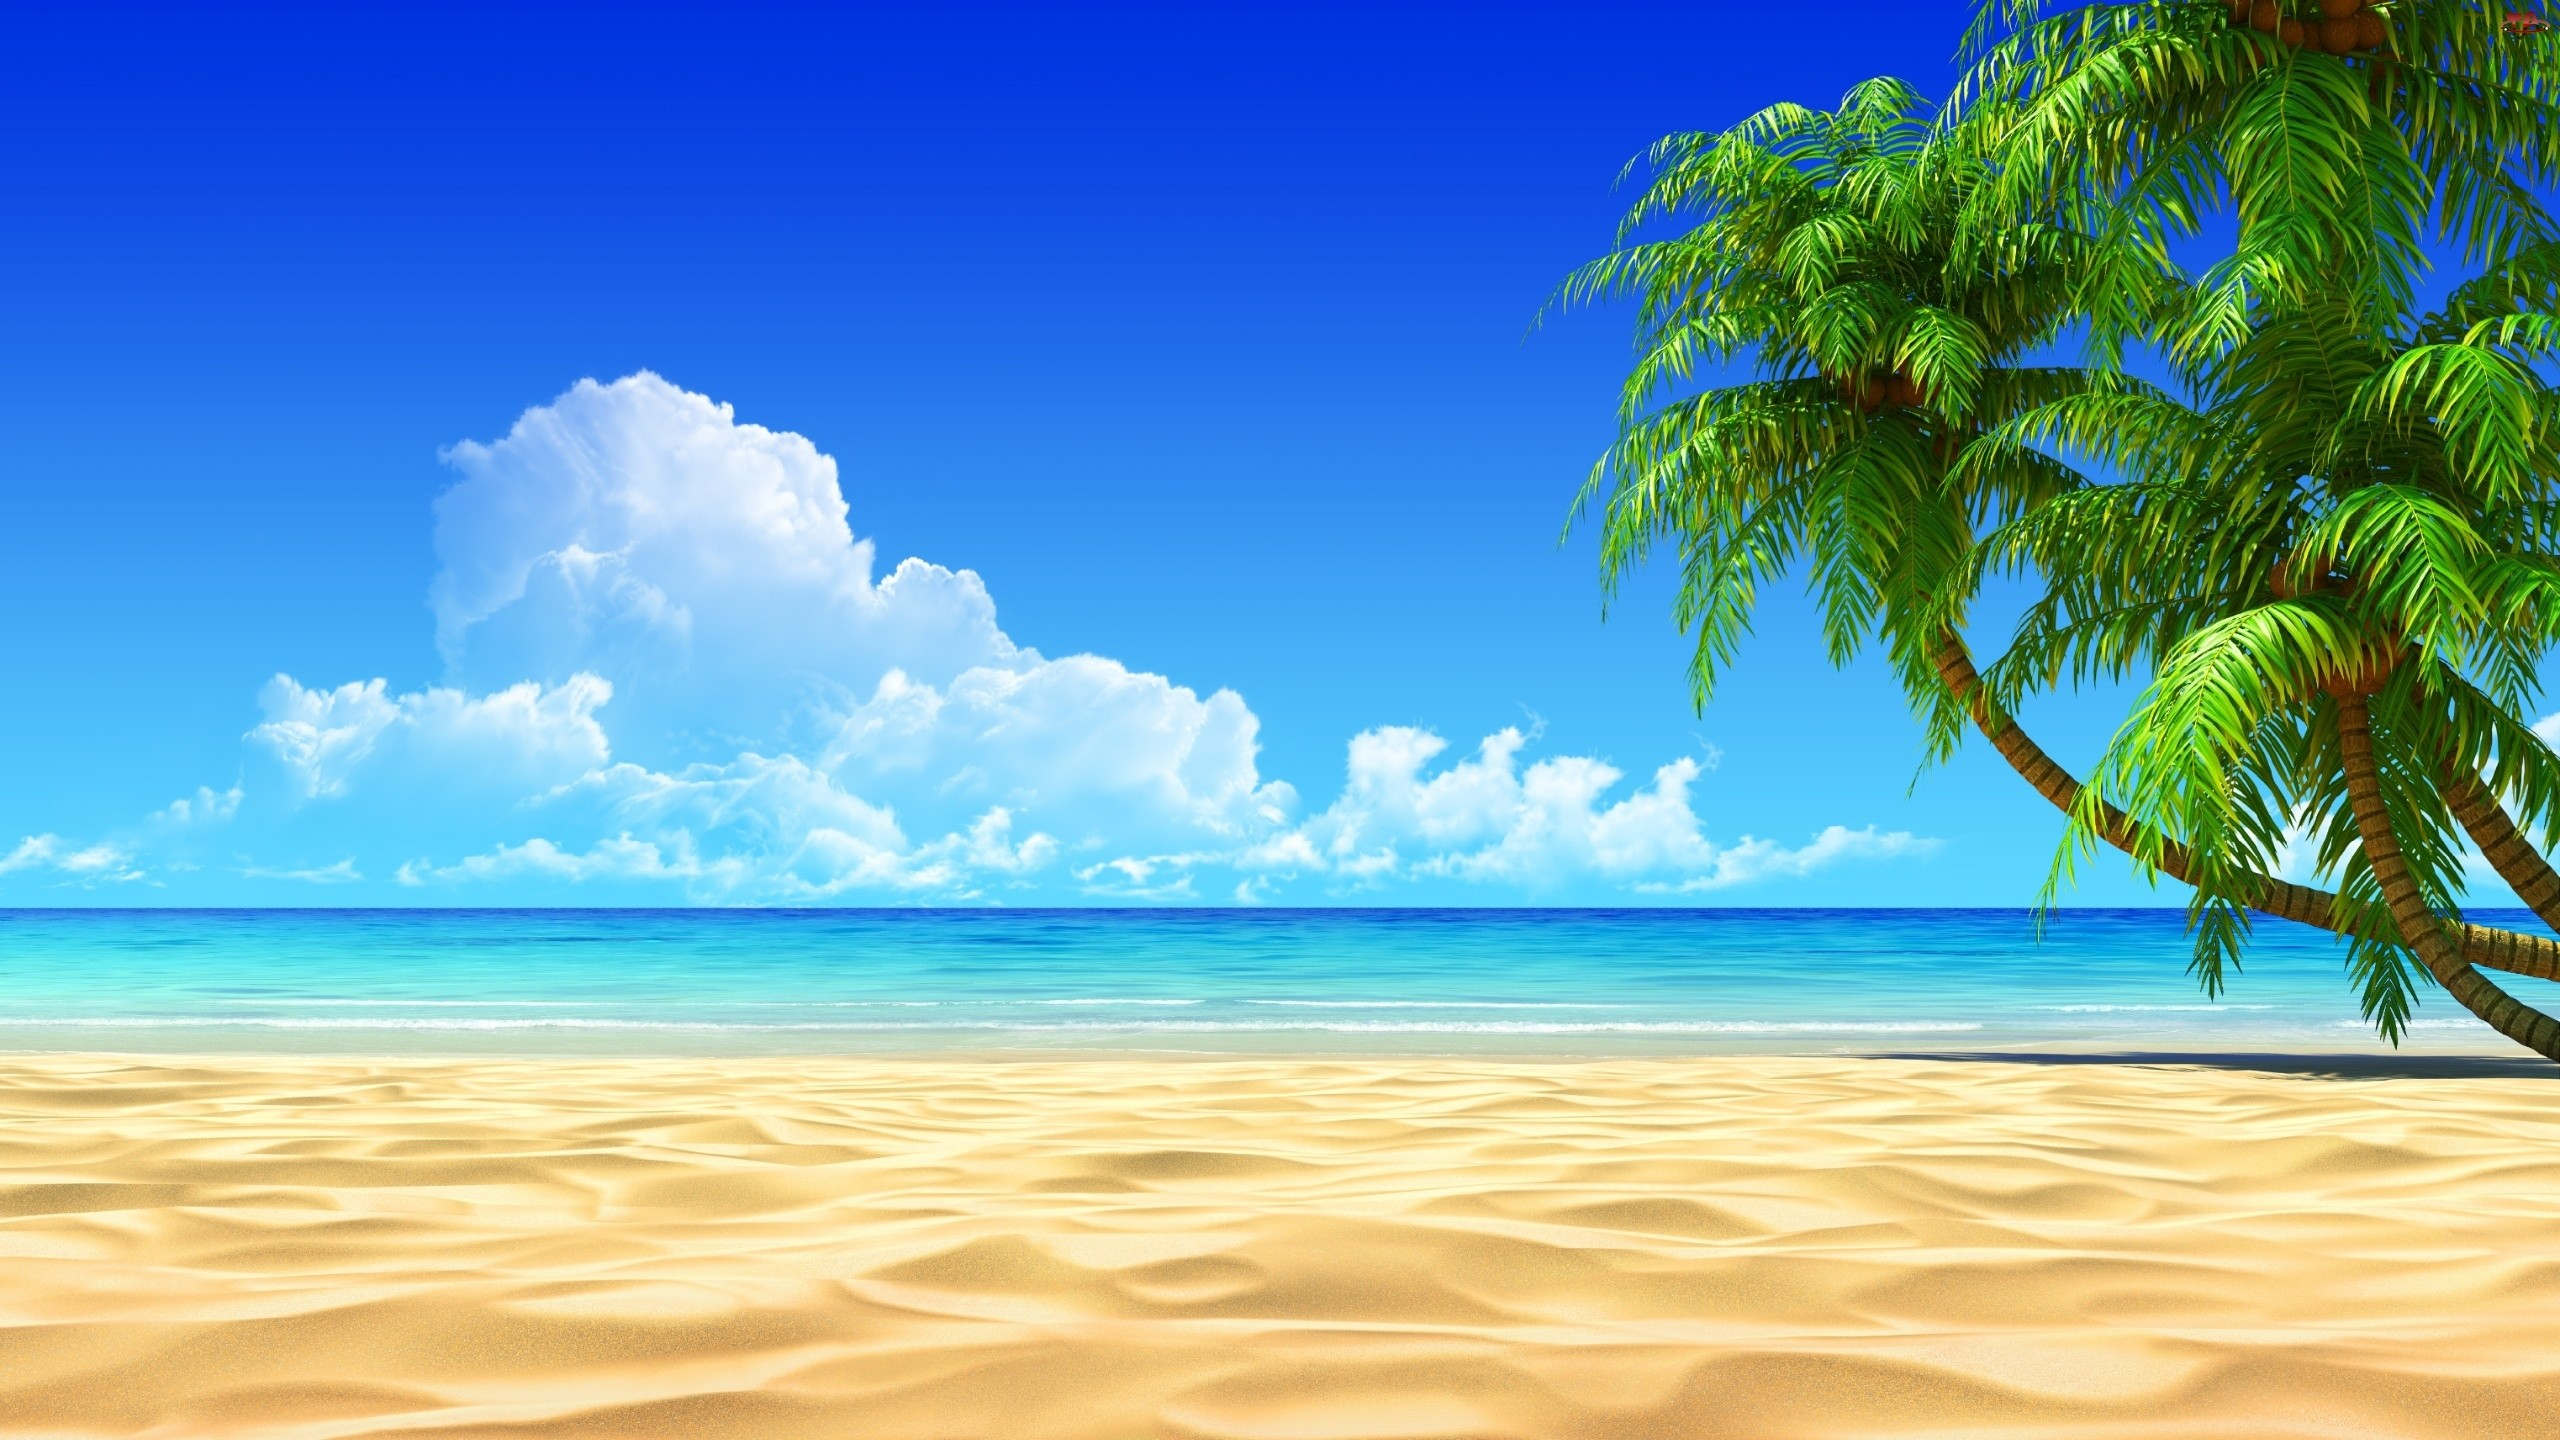 hd beach backgrounds (74+ images)